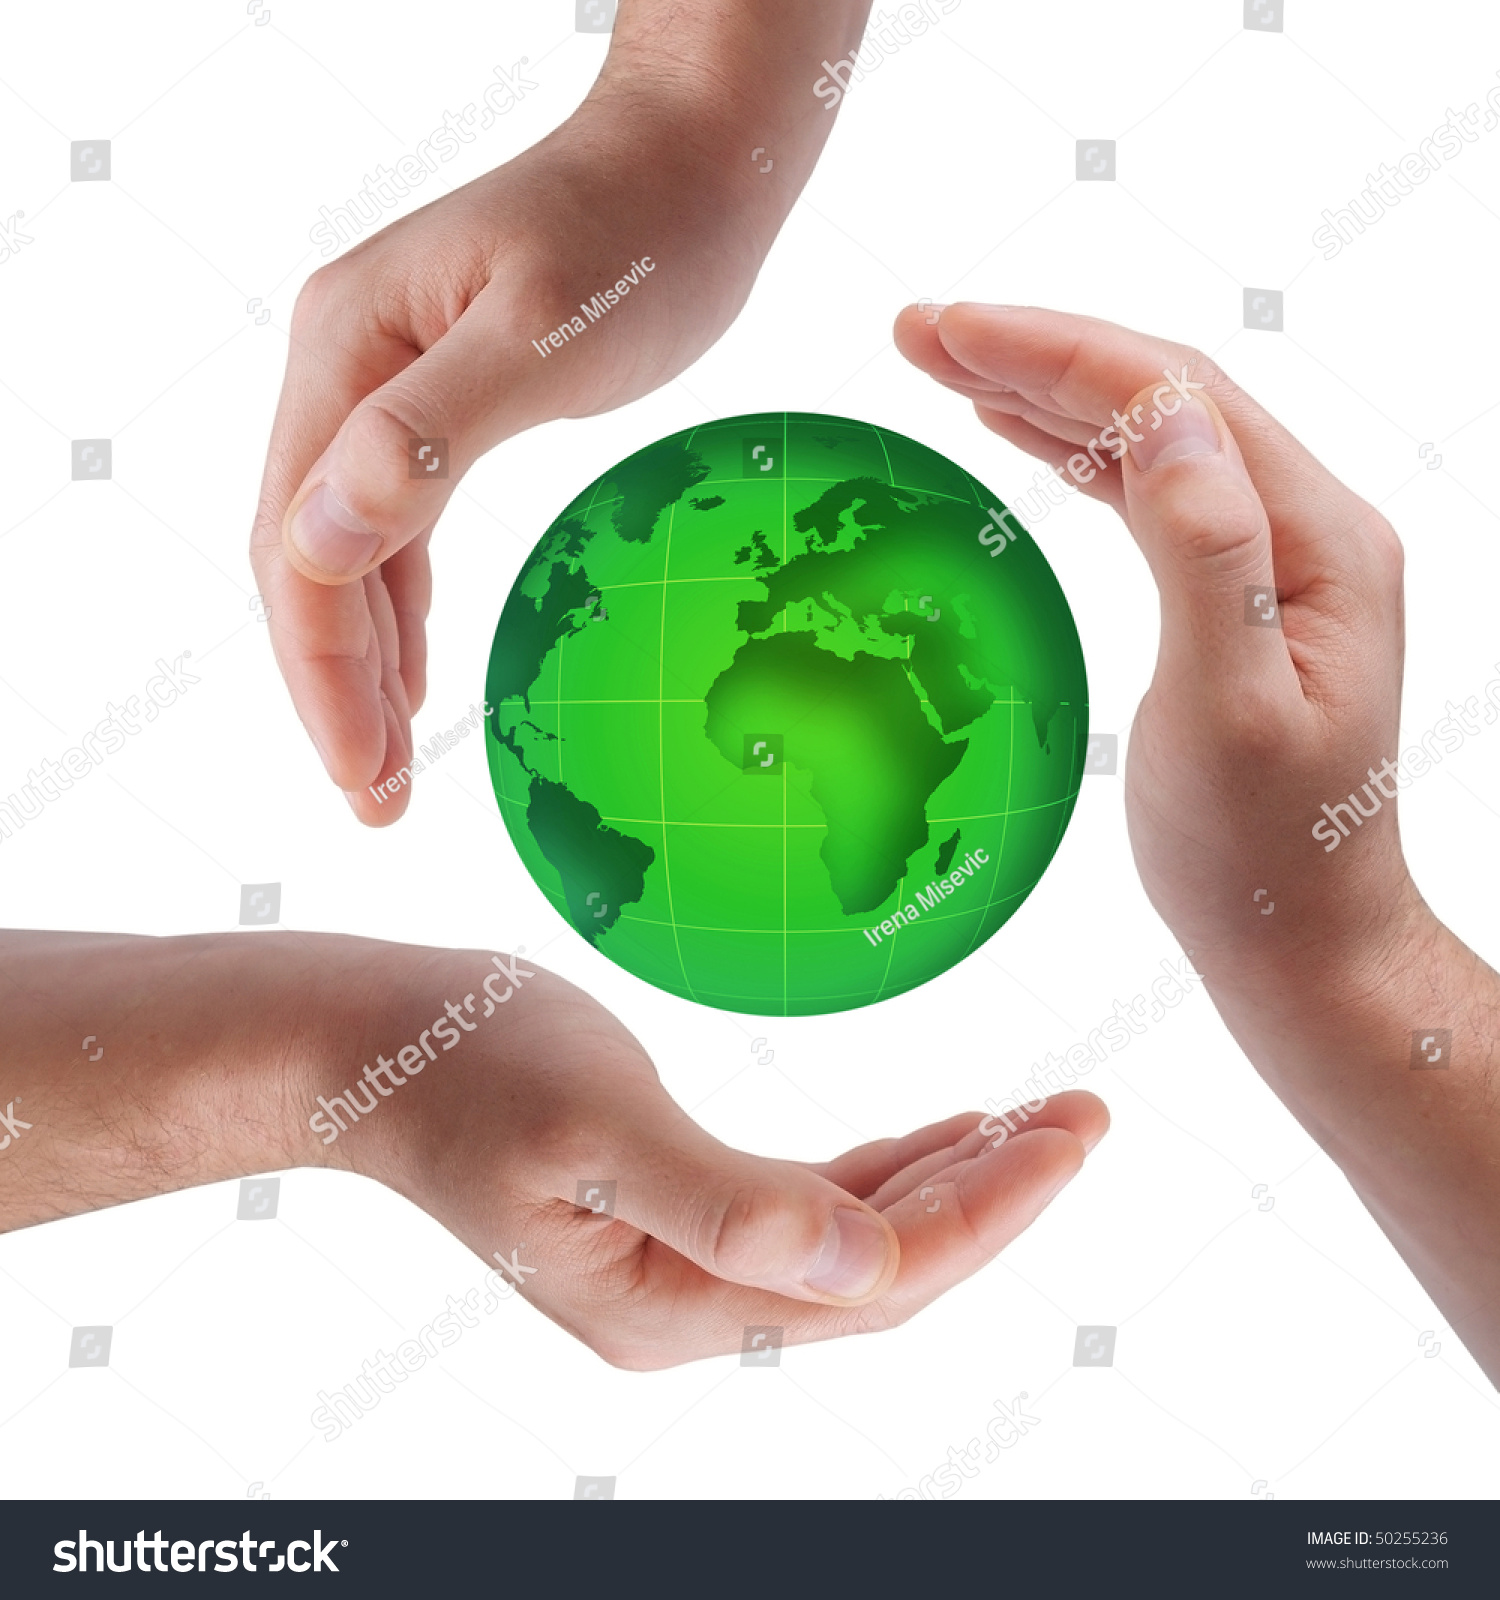 Conceptual safety symbol made hands over stock photo 50255236 conceptual safety symbol made from hands over globe biocorpaavc